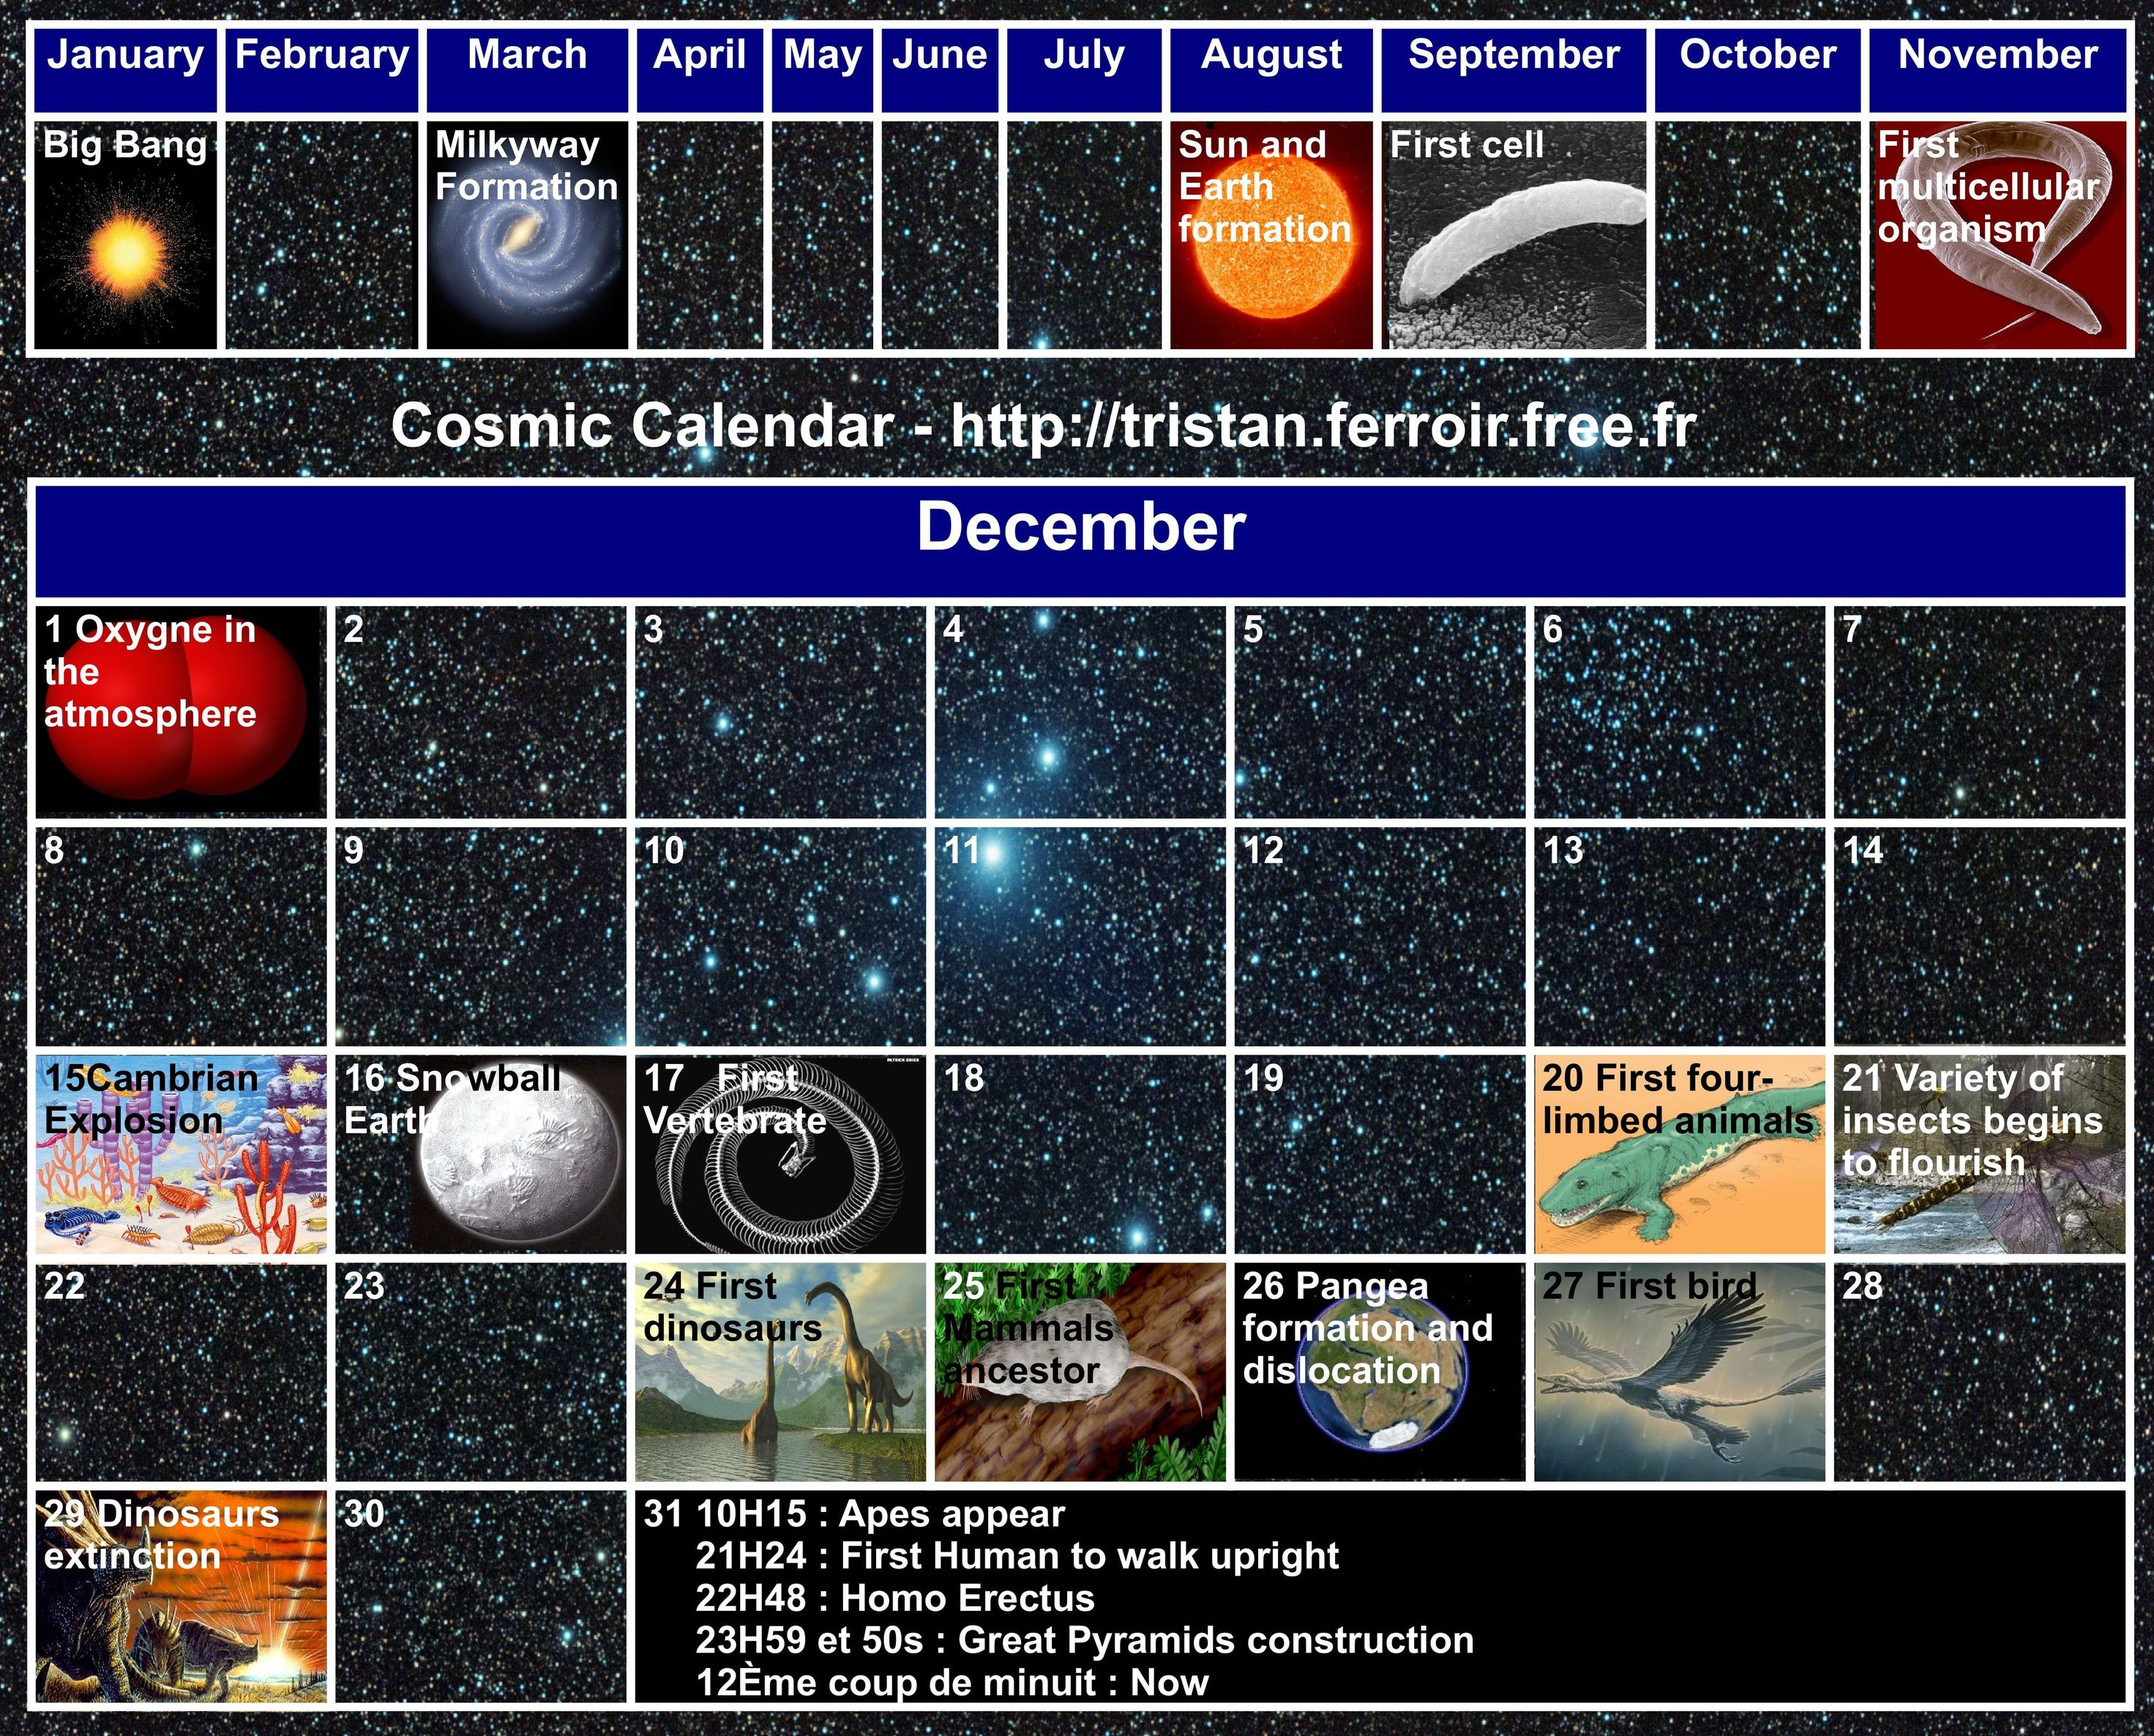 Cosmic Calendar : the history of the Universe seen over a one year period